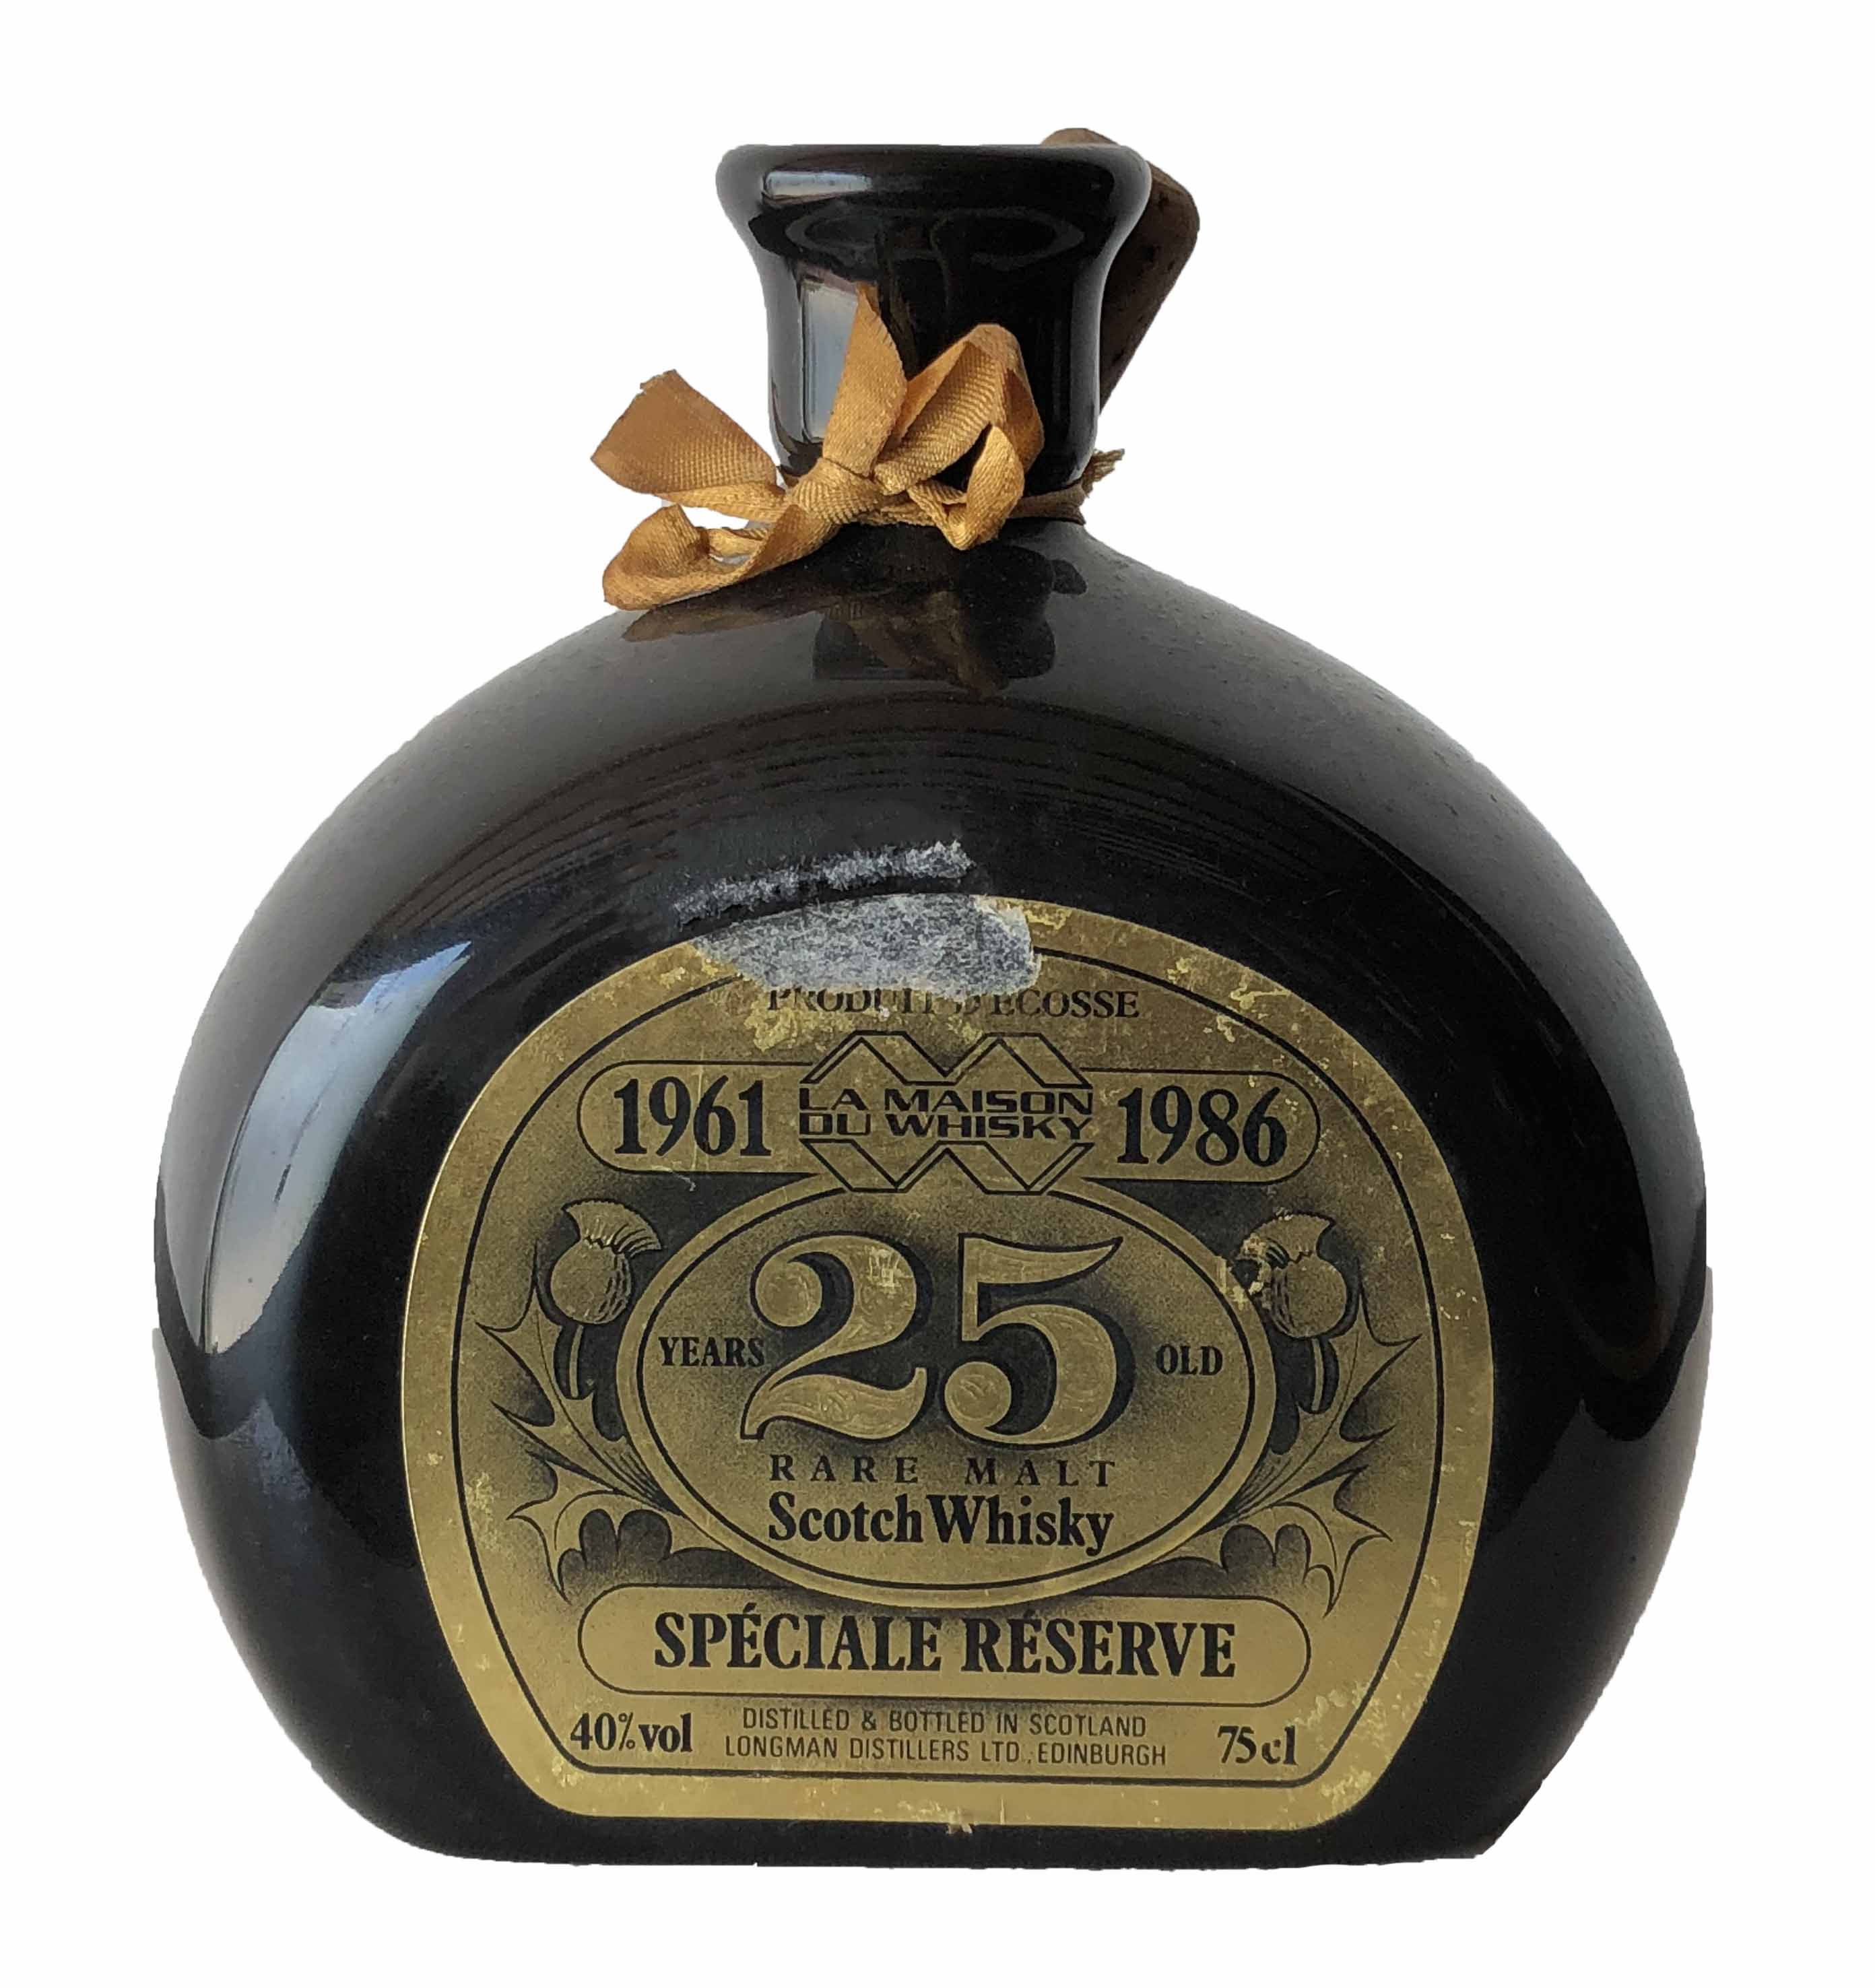 La Maison du Whisky Rare Malt Scotch Whisky 25 years old Spécial